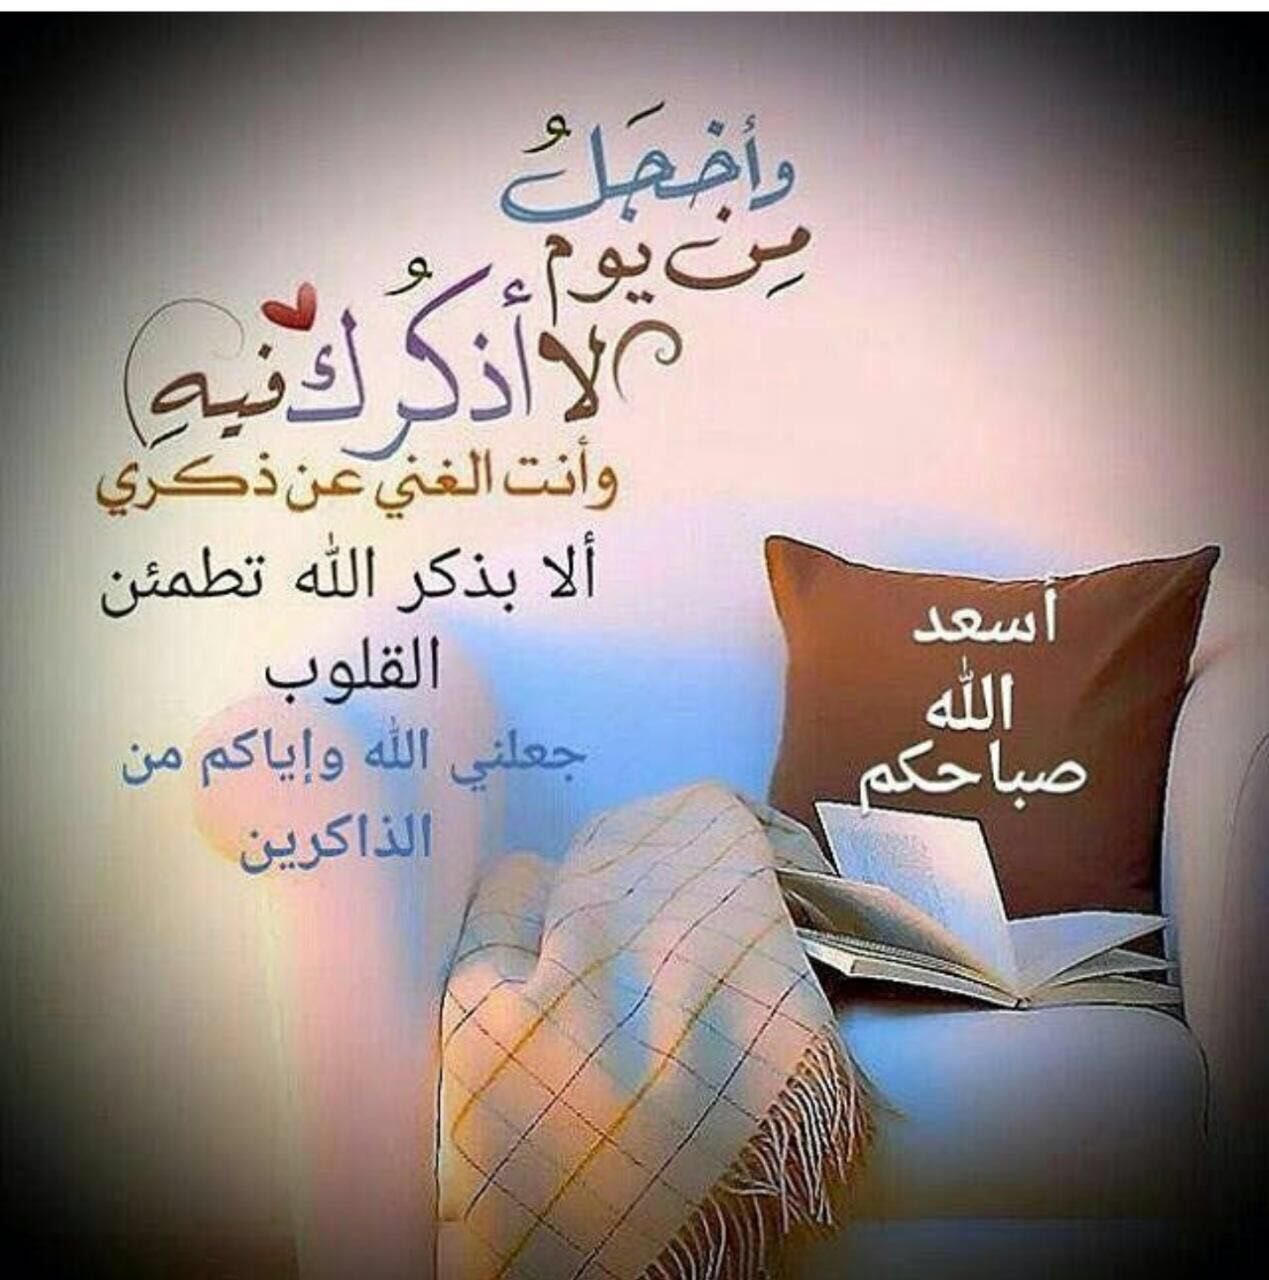 Pin By Ali علي On صباح الخير Good Morning Home Decor Decals Greetings Abs